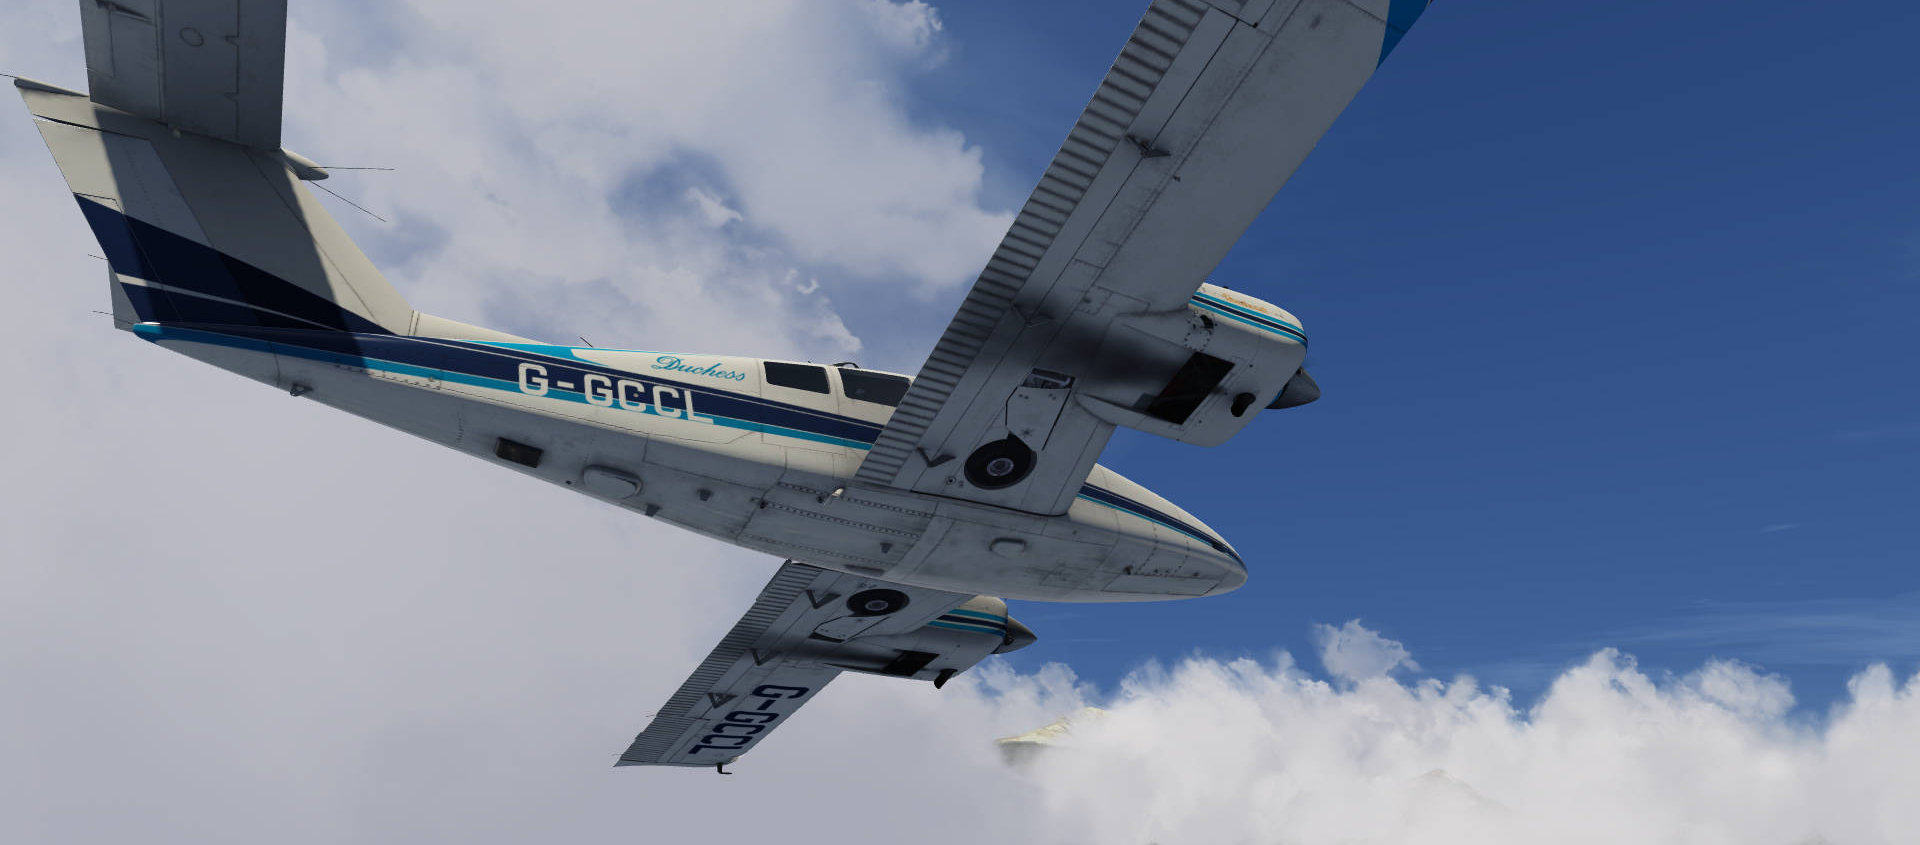 Just Flight Beech Duchess 76 Aerofly FS 2 Release